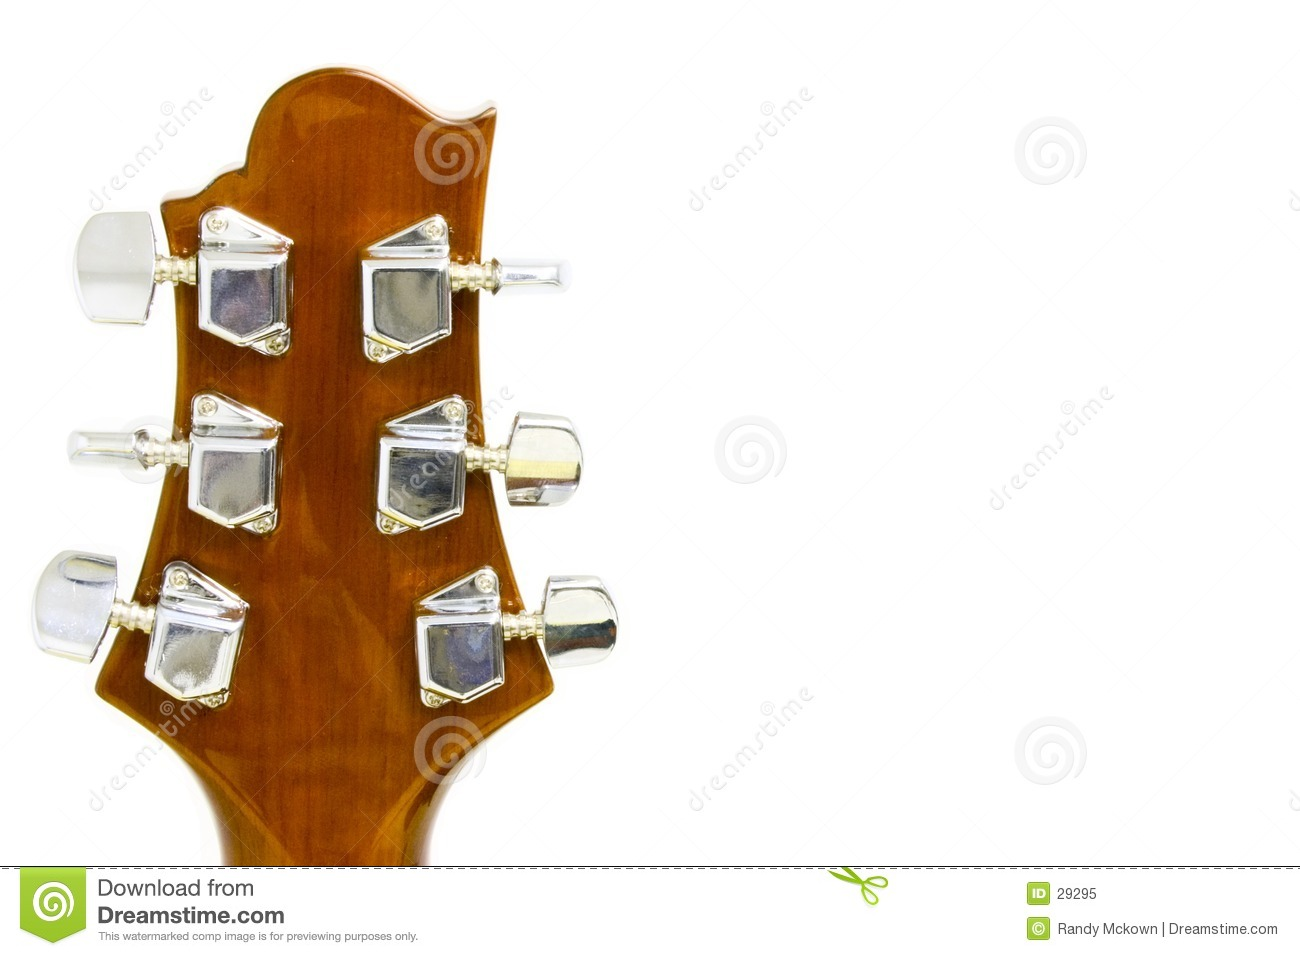 Headstock da guitarra